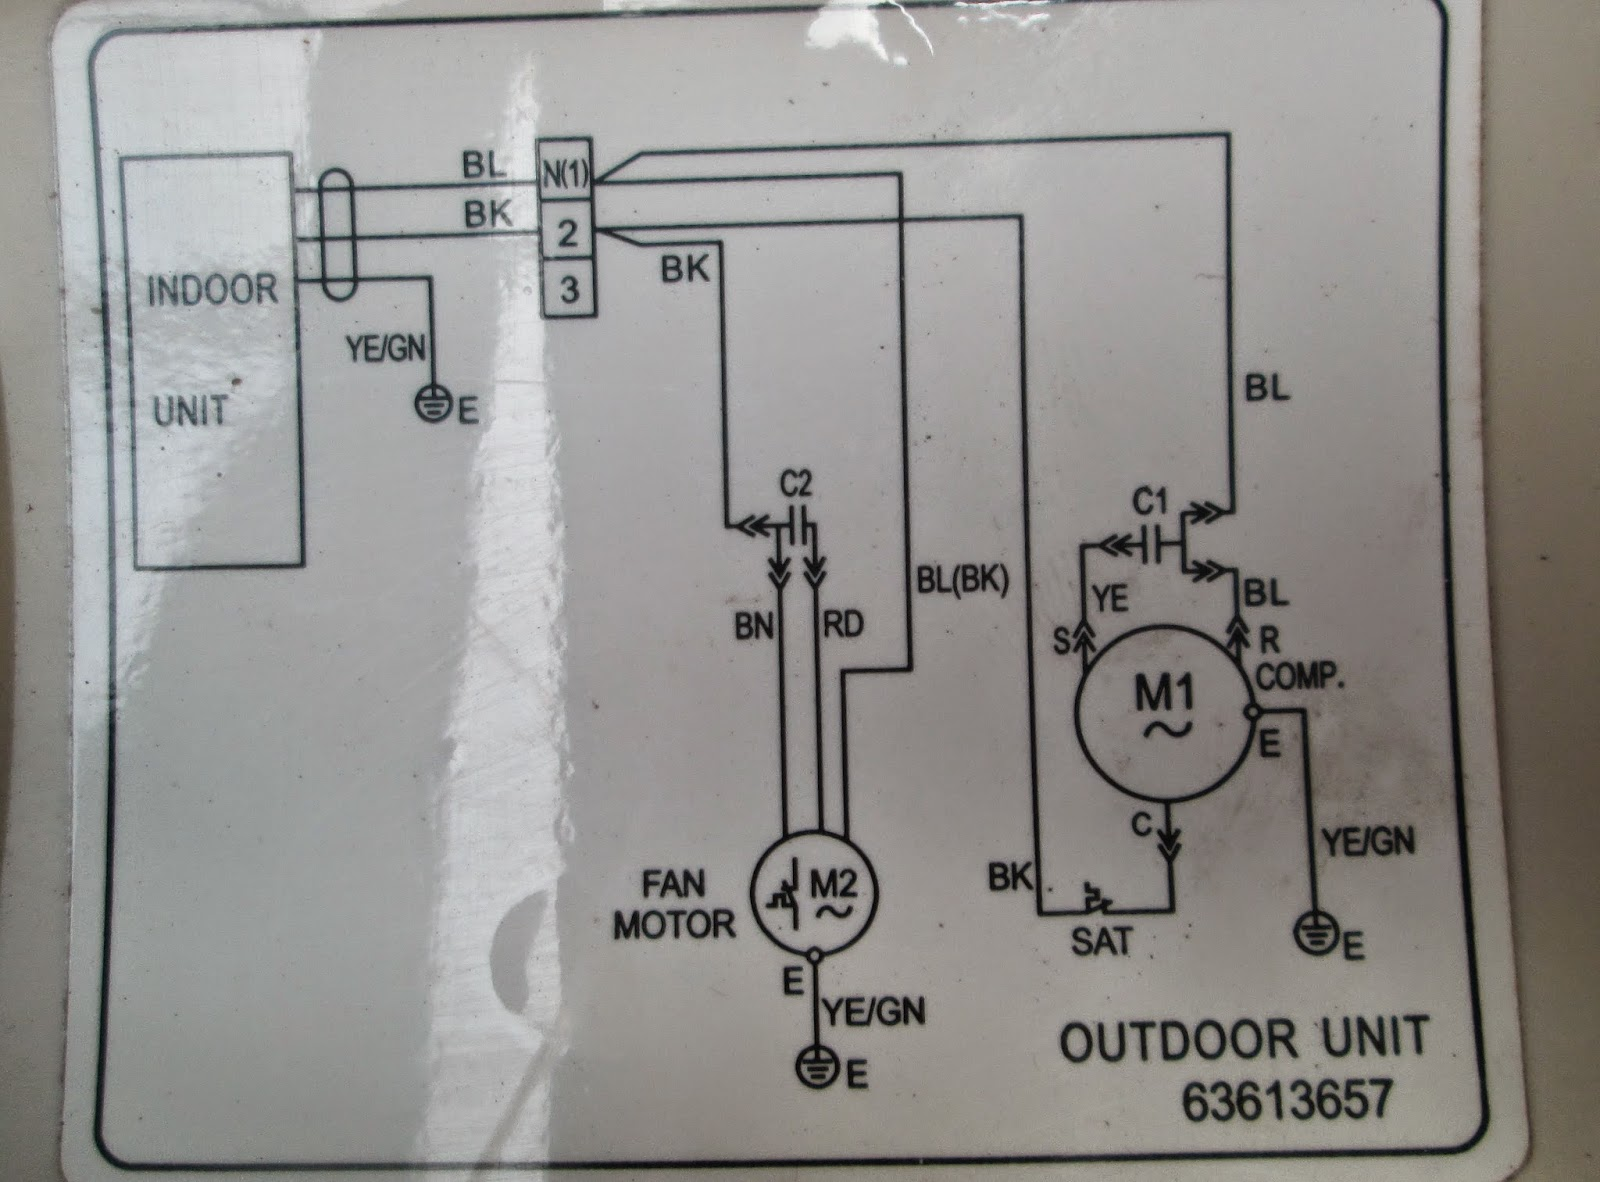 Wiring Diagram Kelistrikan Ac Split Manual Outdoor Service Kota Serang Baru Air Conditioner Motor Internal Di Dvd